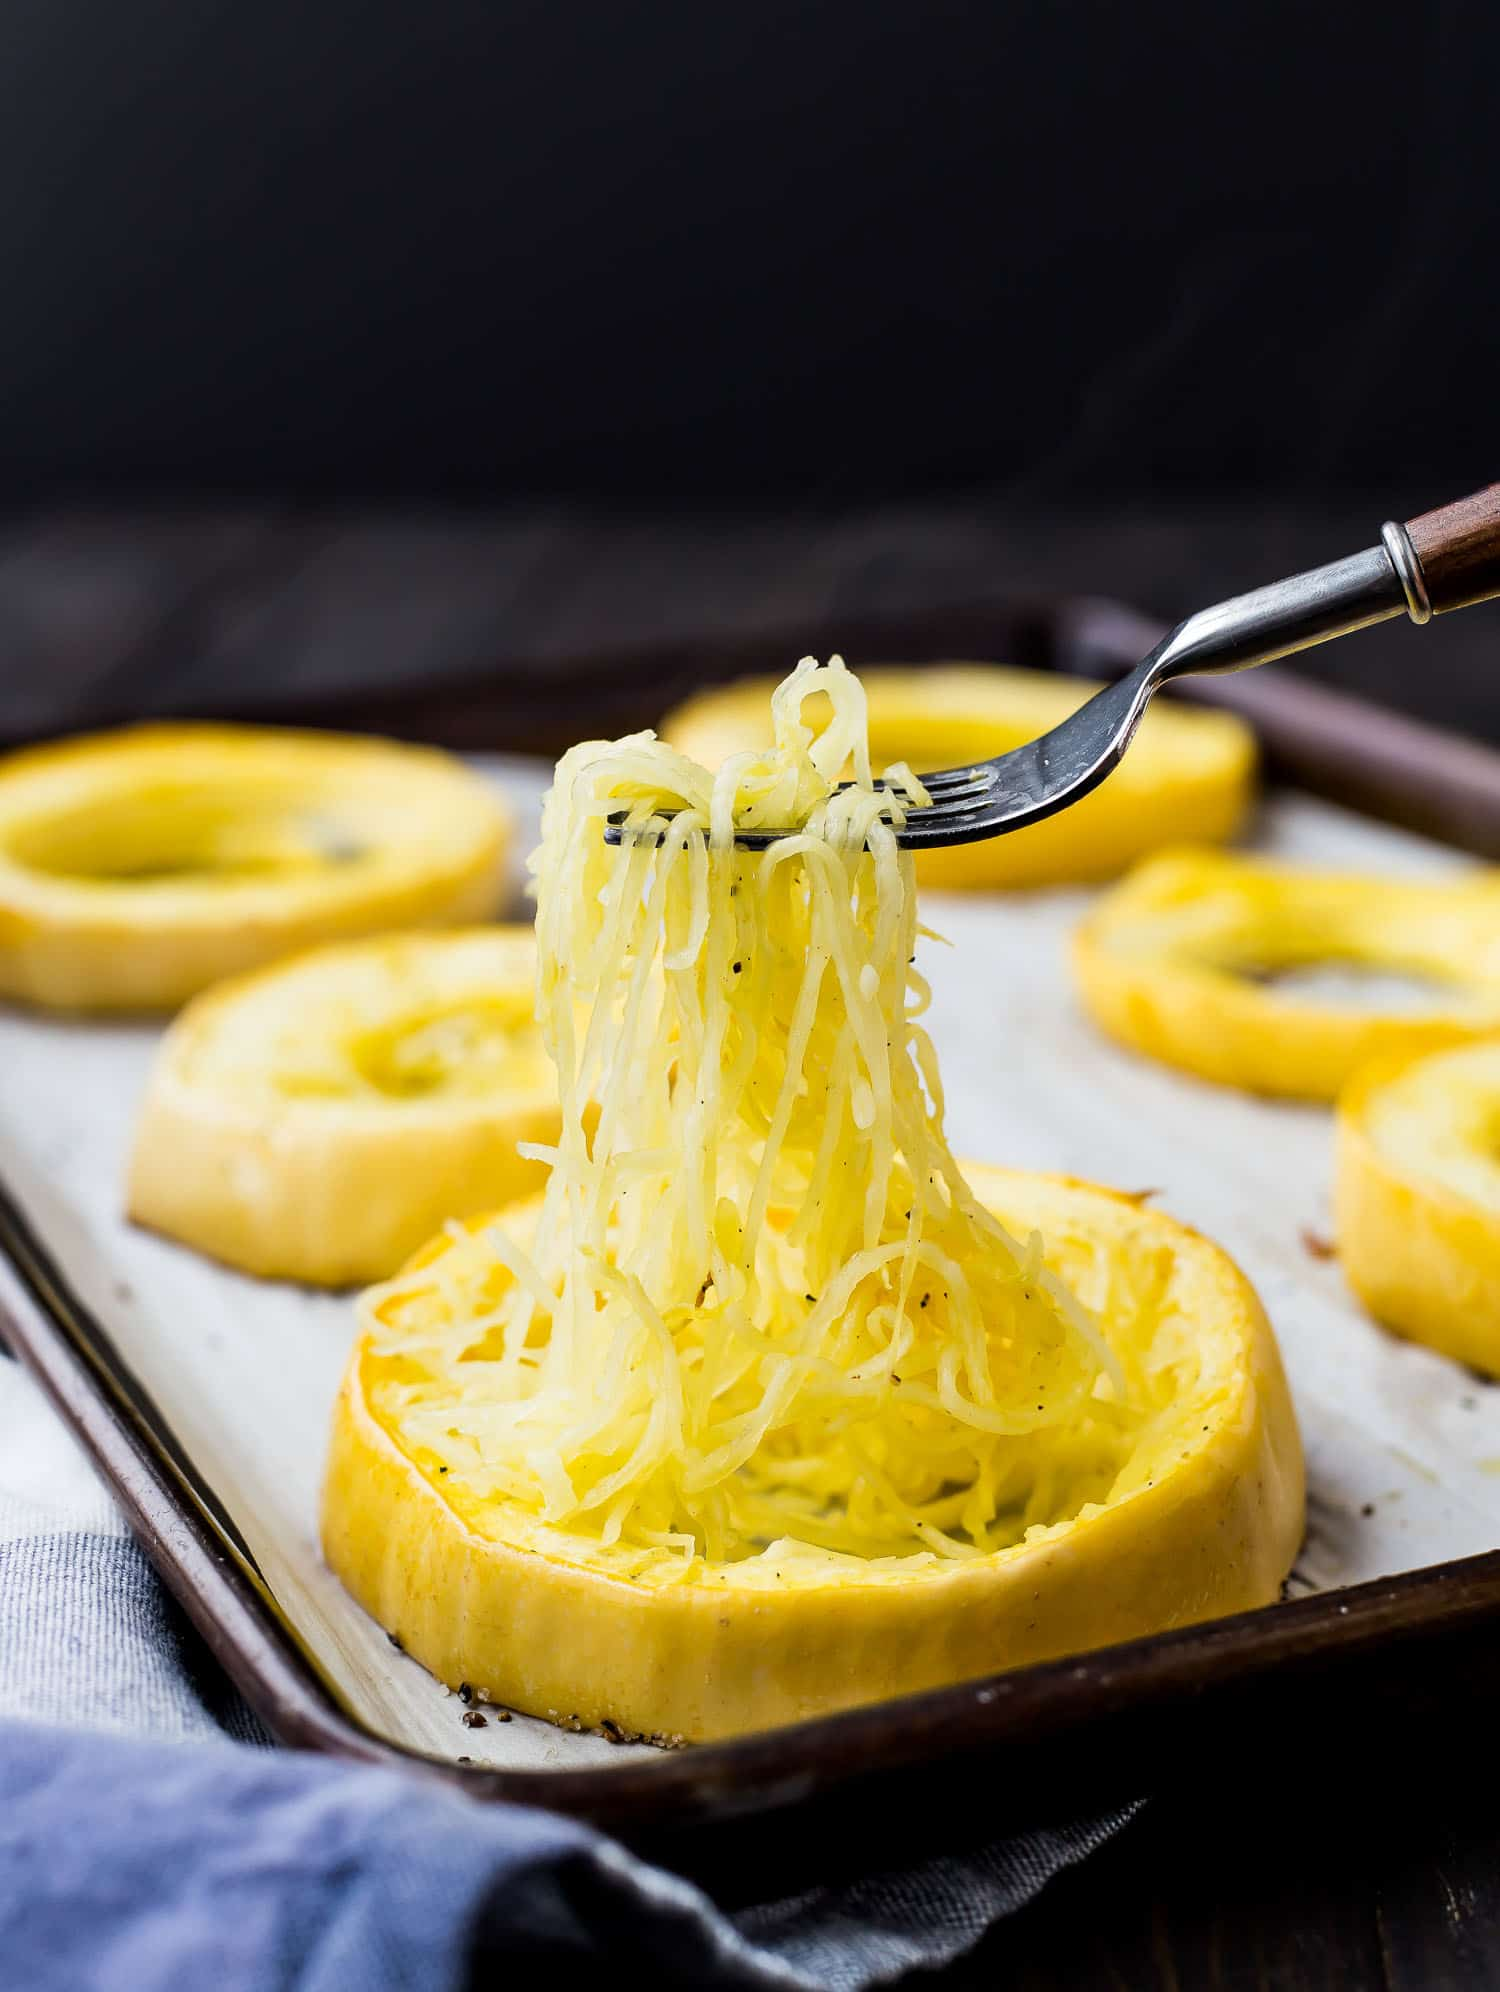 Ring of spaghetti squash, strands being pulled out with a fork.